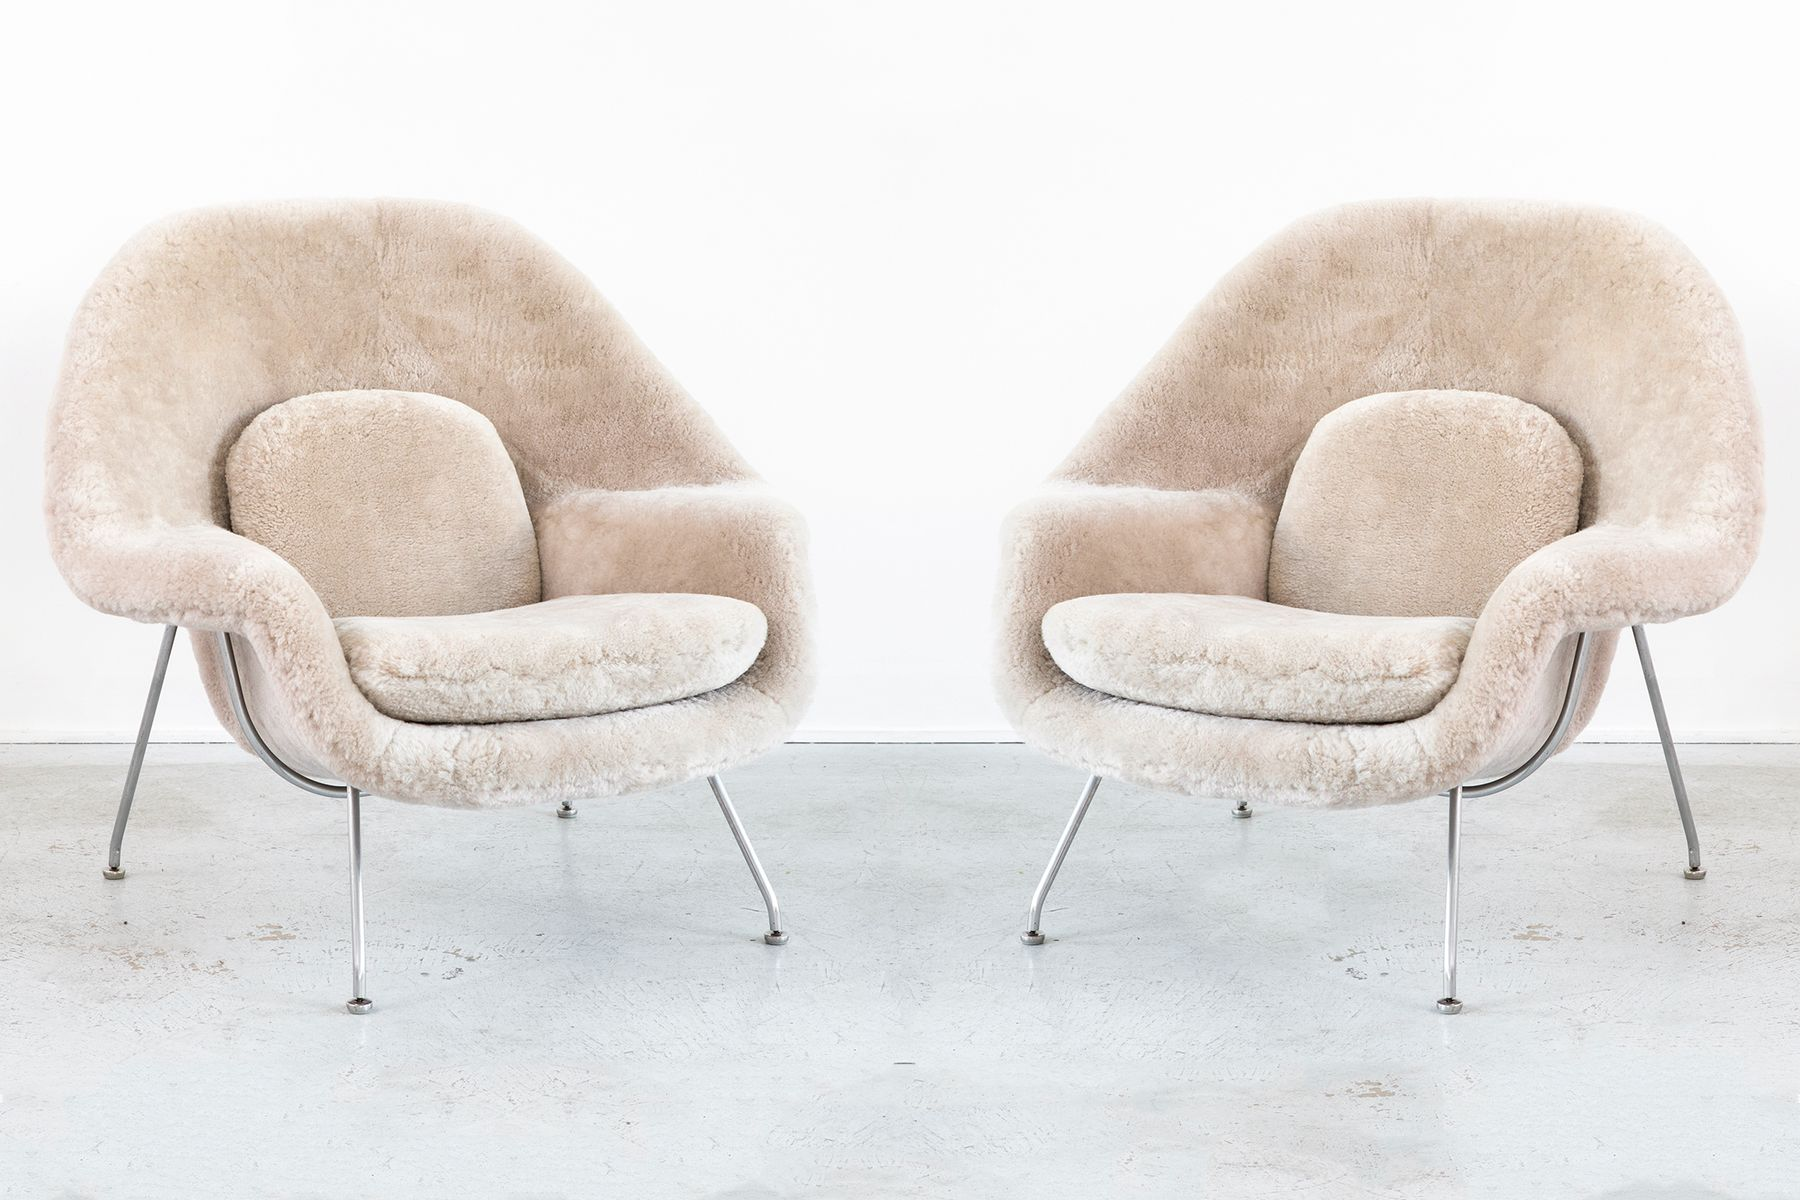 Womb Chairs by Eero Saarinen for Knoll, 1960s, Set of 2 for sale .